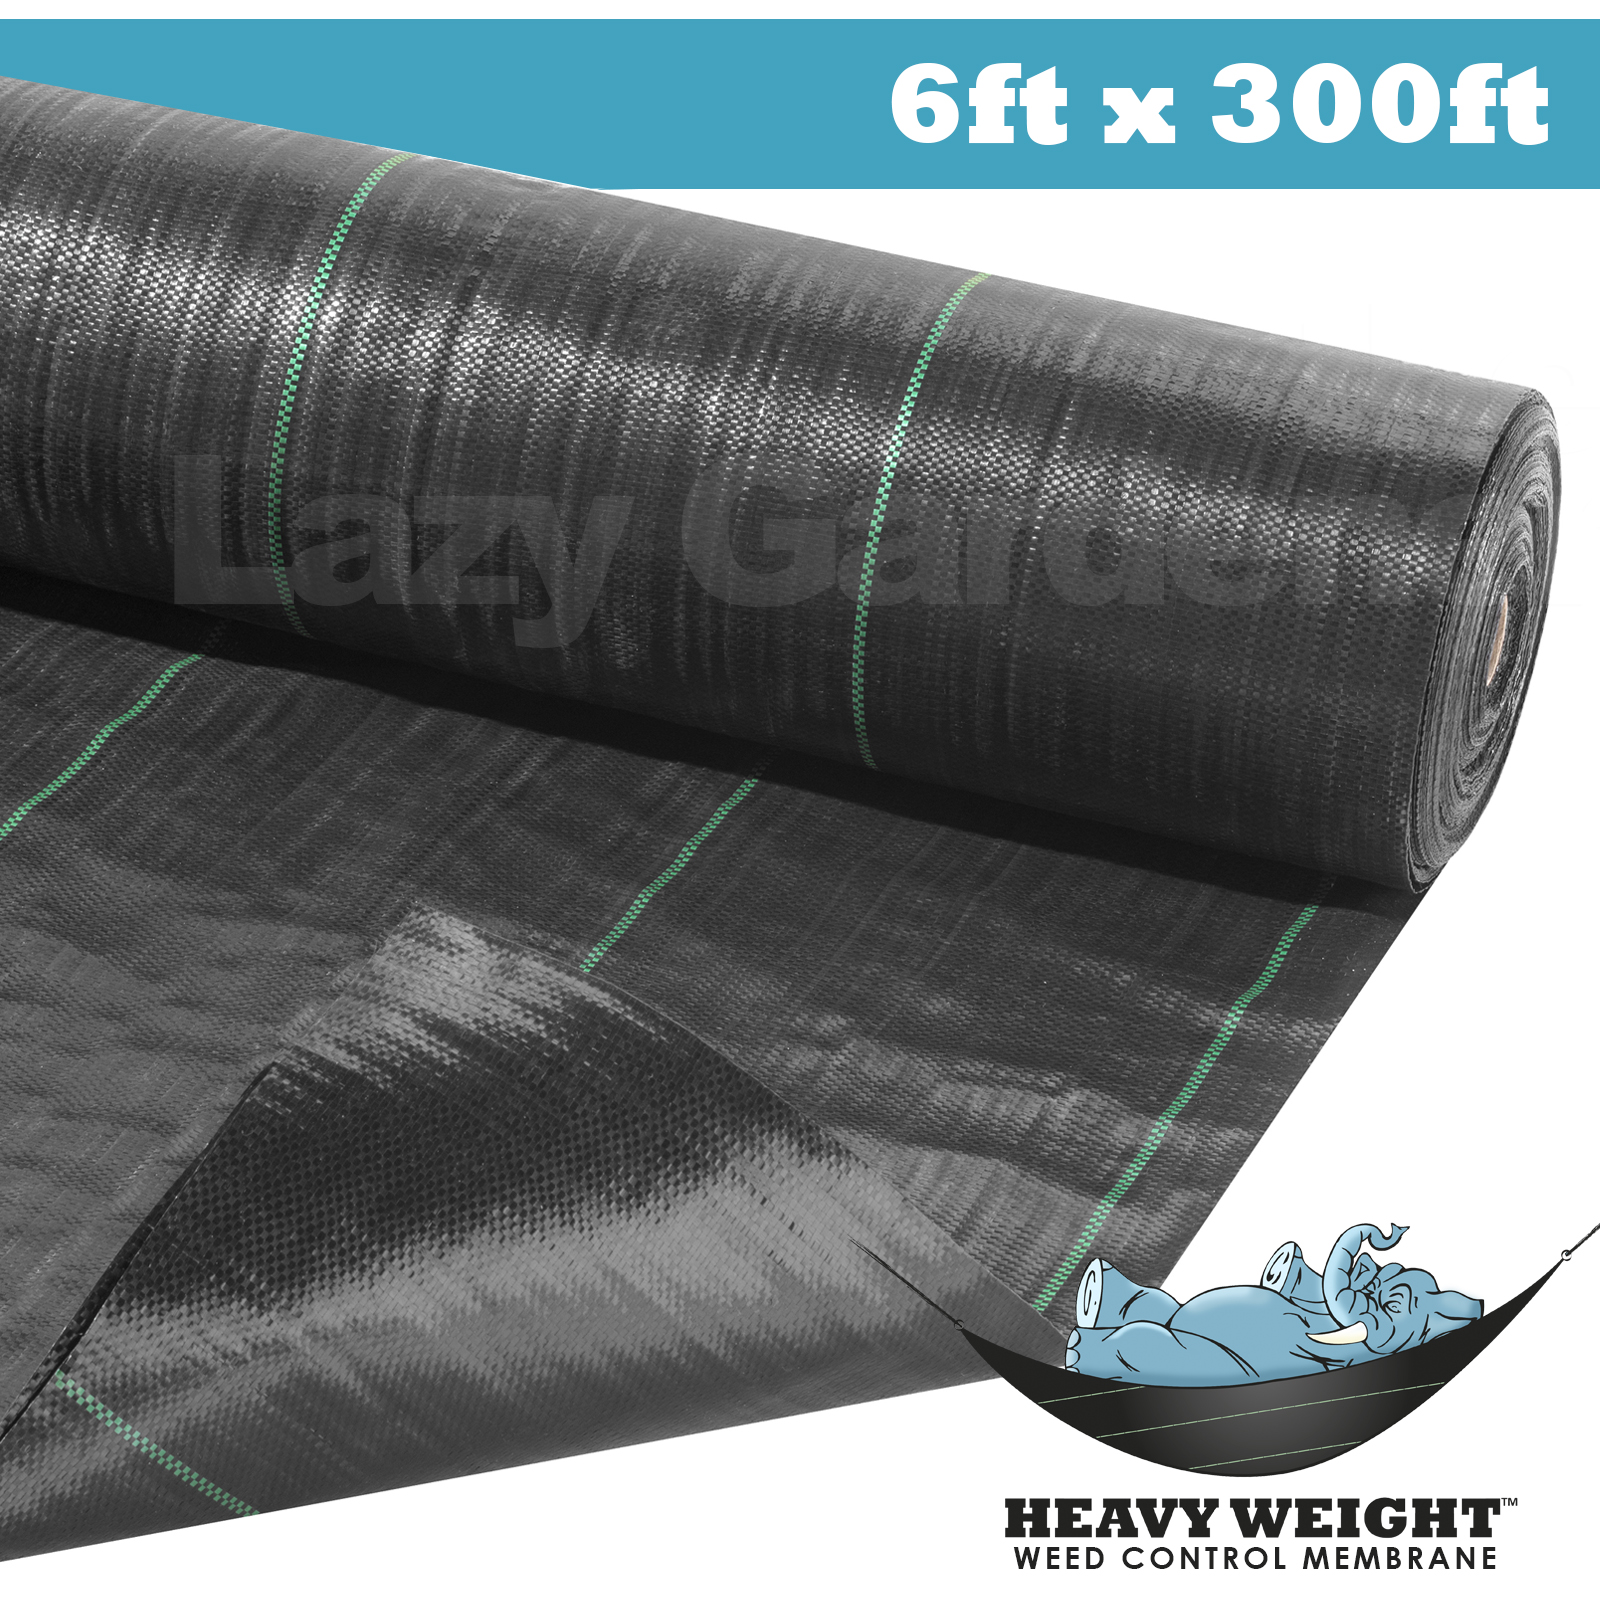 6ft x 300ft weed control fabric